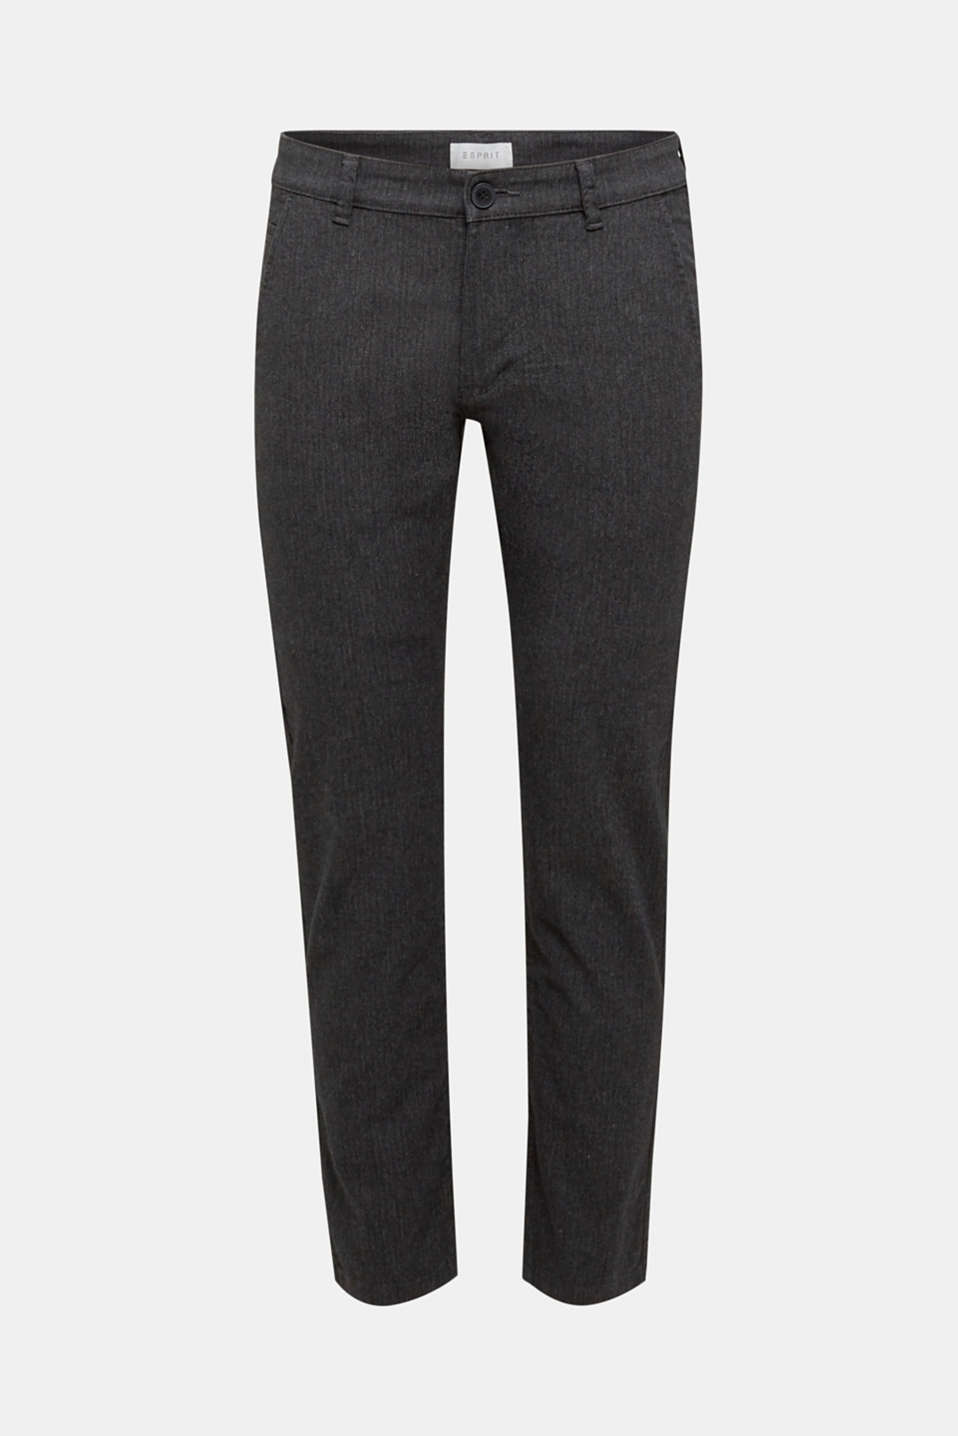 Stretch trousers with a herringbone pattern, ANTHRACITE, detail image number 5